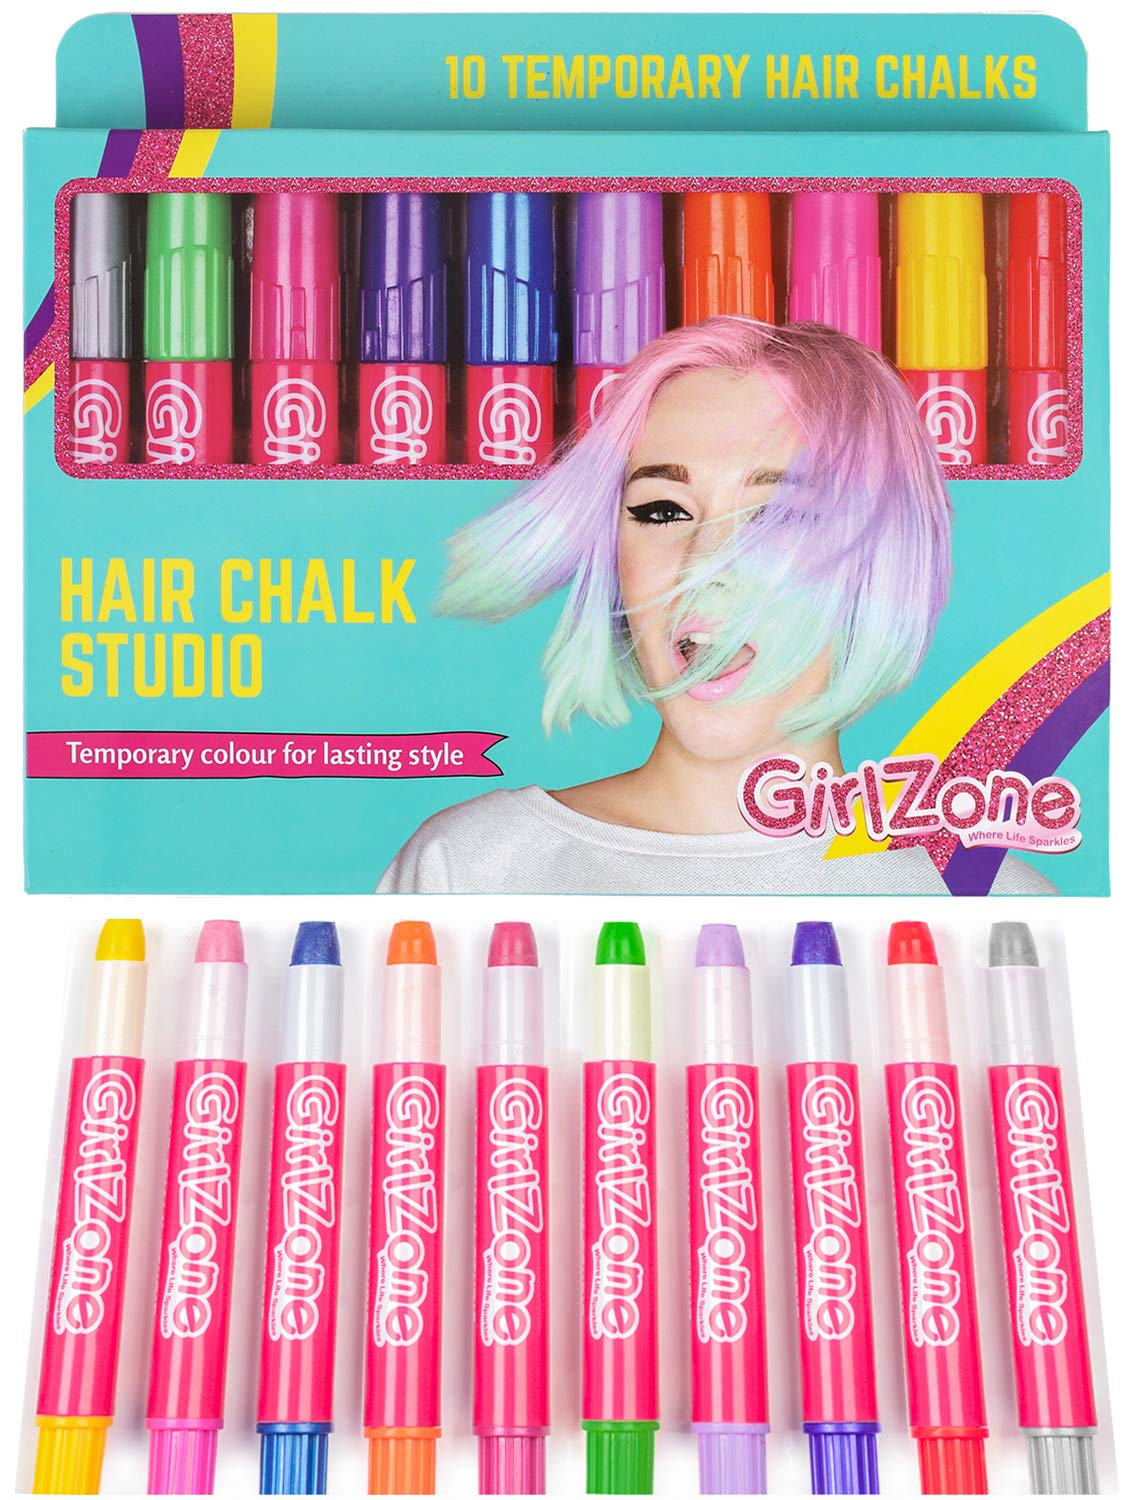 Christmas Gifts For Girls Age 9 10.Hair Chalk Birthday Gifts For Girls 10 Colourful Hair Chalk Pens Temporary Color Presents For Girls Of All Ages